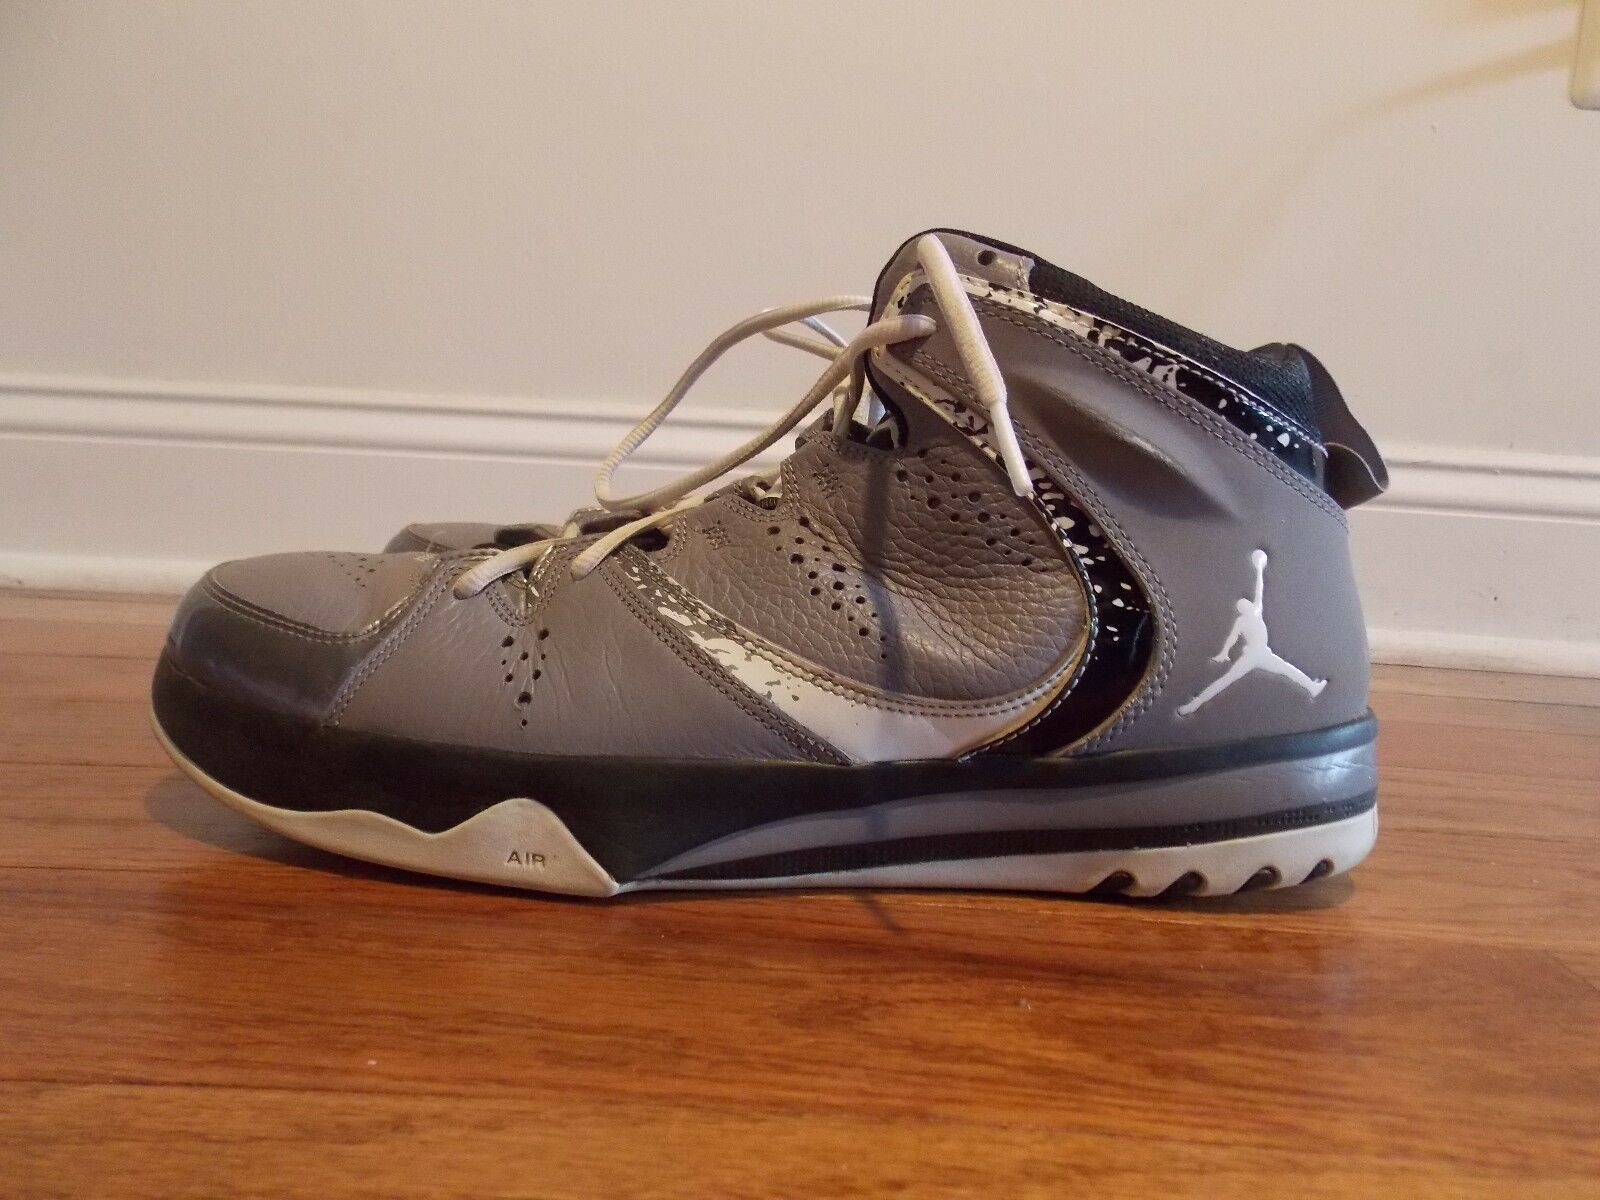 Rare 2013 Nike Air Jordan Phase 23 2 Men's Basketball Shoes Comfortable Cheap women's shoes women's shoes